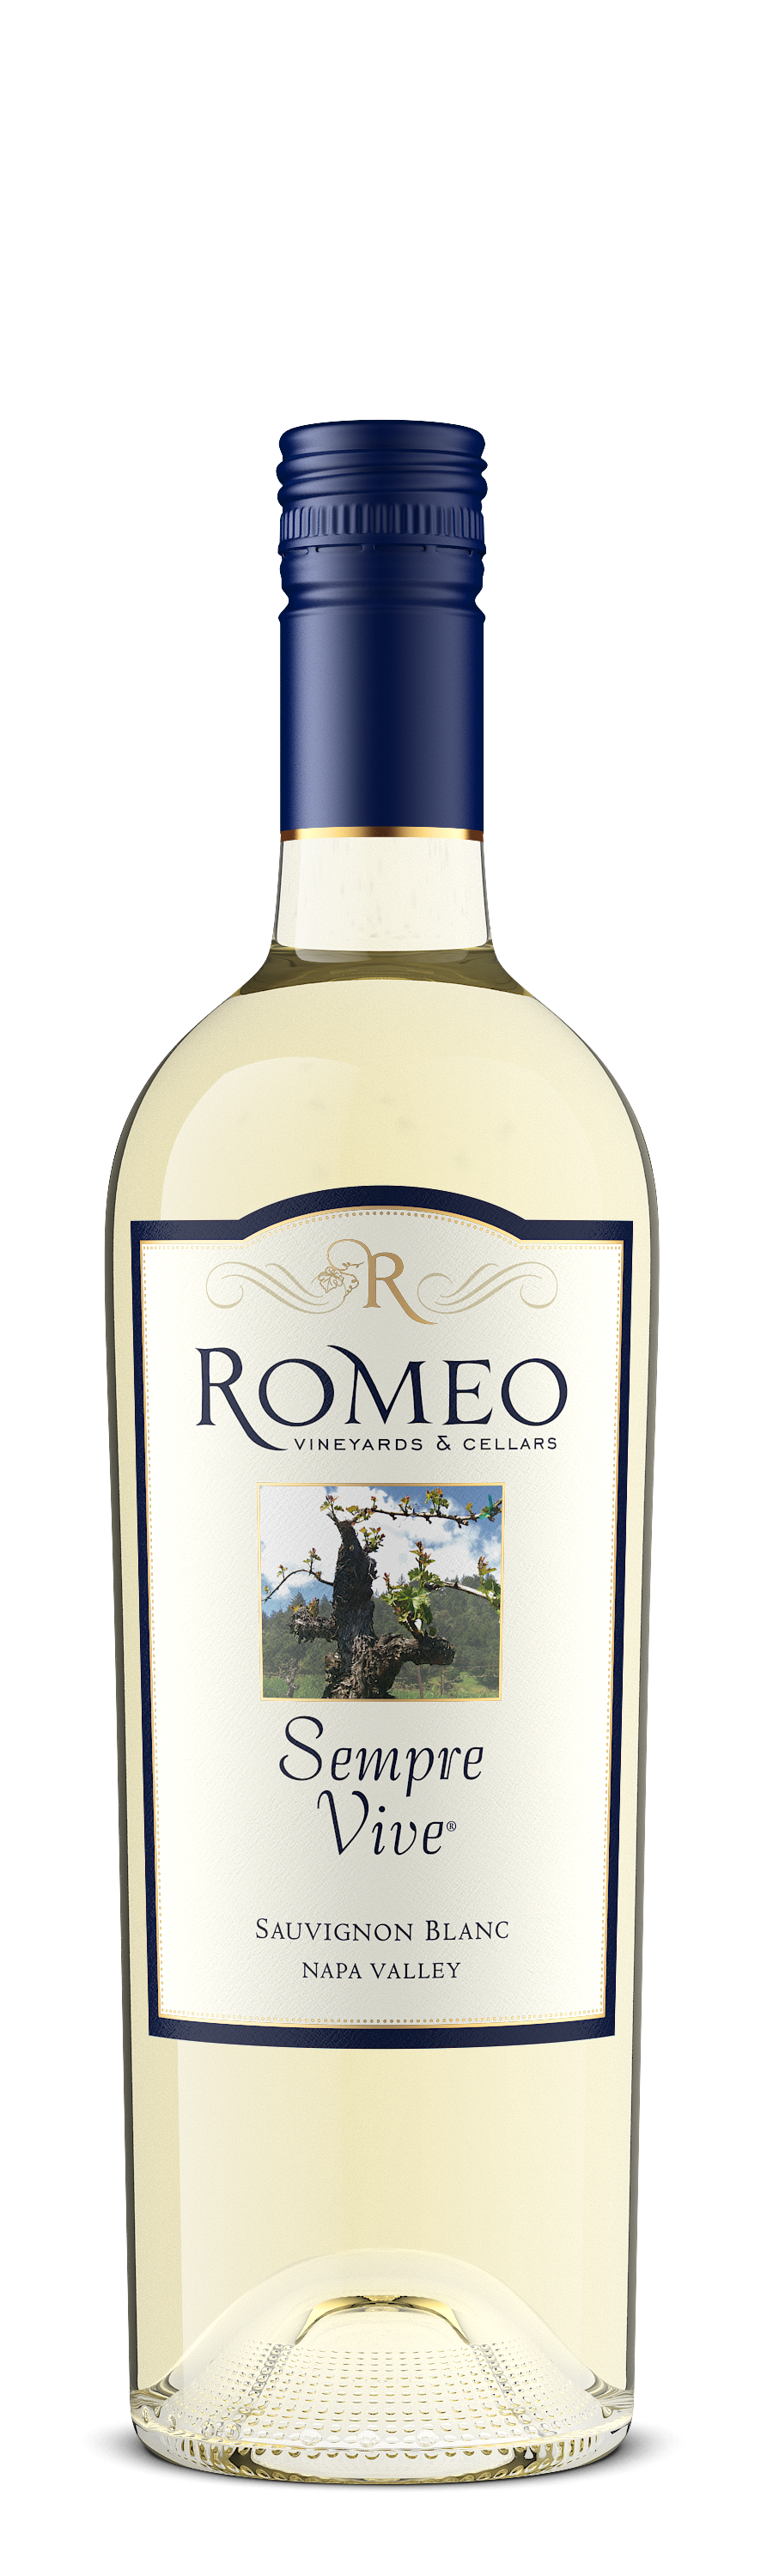 Product Image for 2016 Sauvignon Blanc